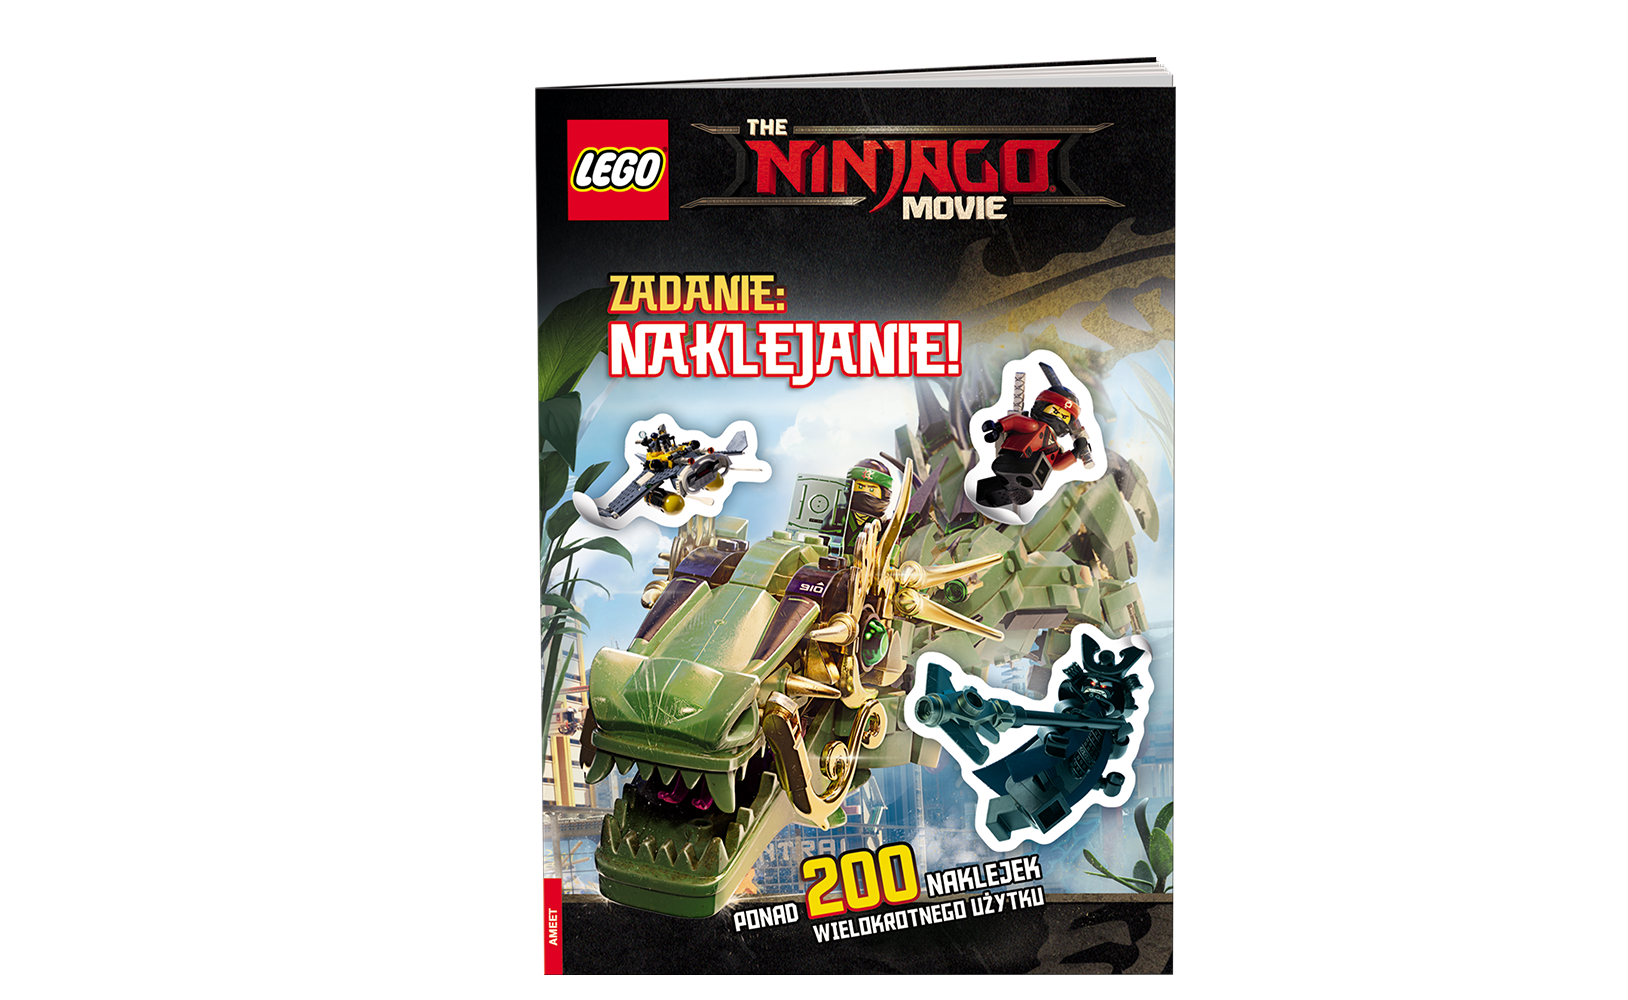 THE LEGO® NINJAGO® MOVIE™. Zadanie: naklejanie!